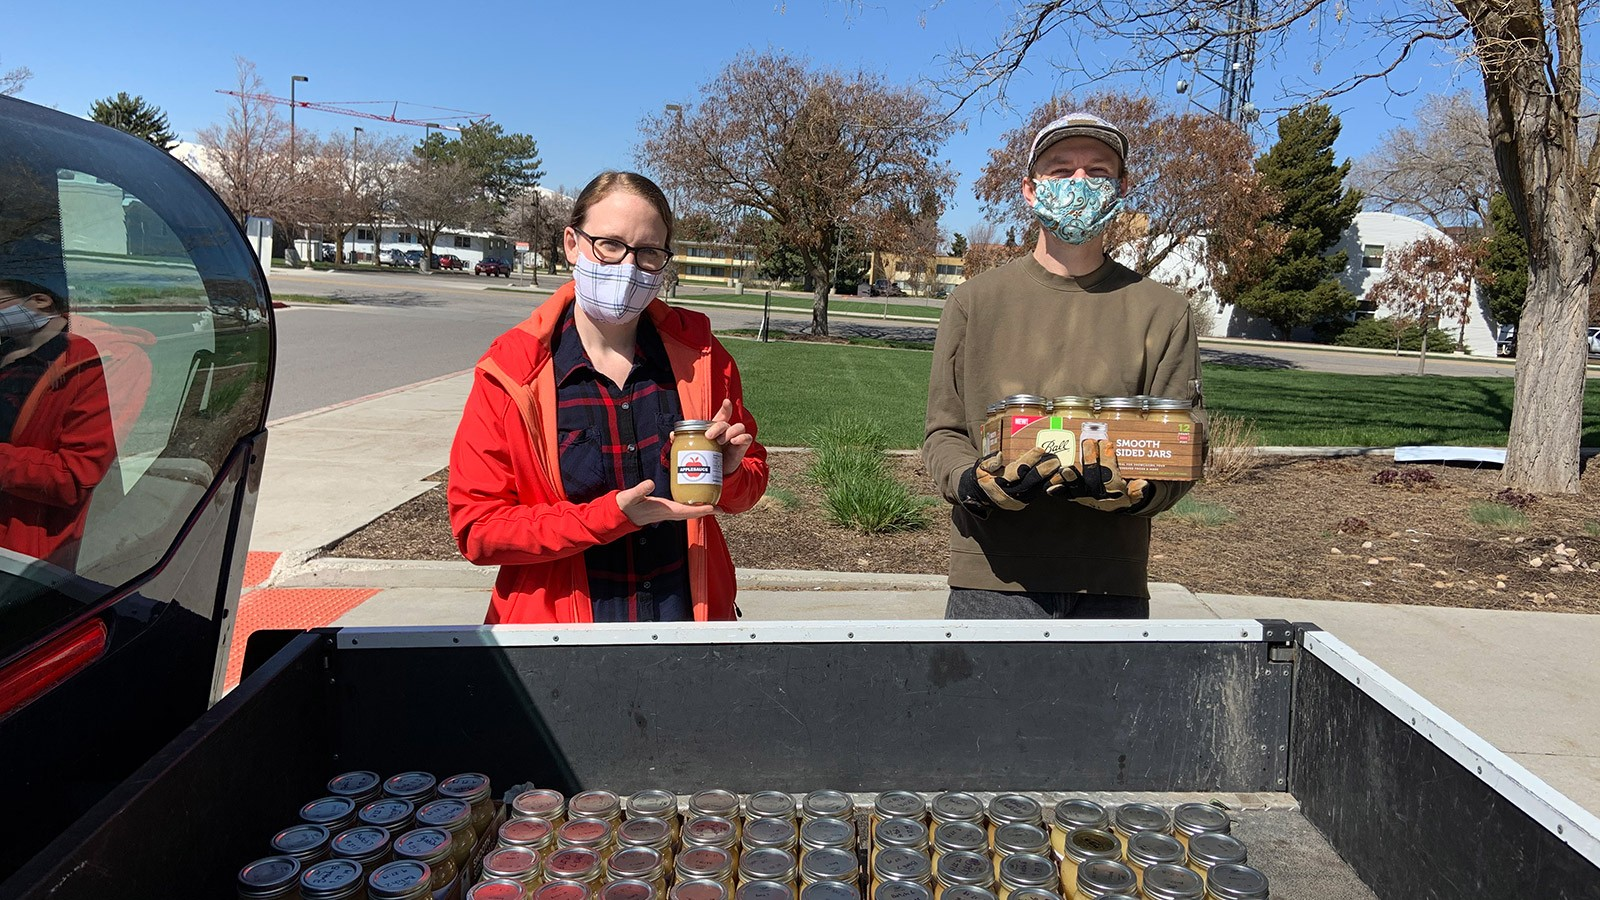 two students wearing masks loading canned food into a truck.